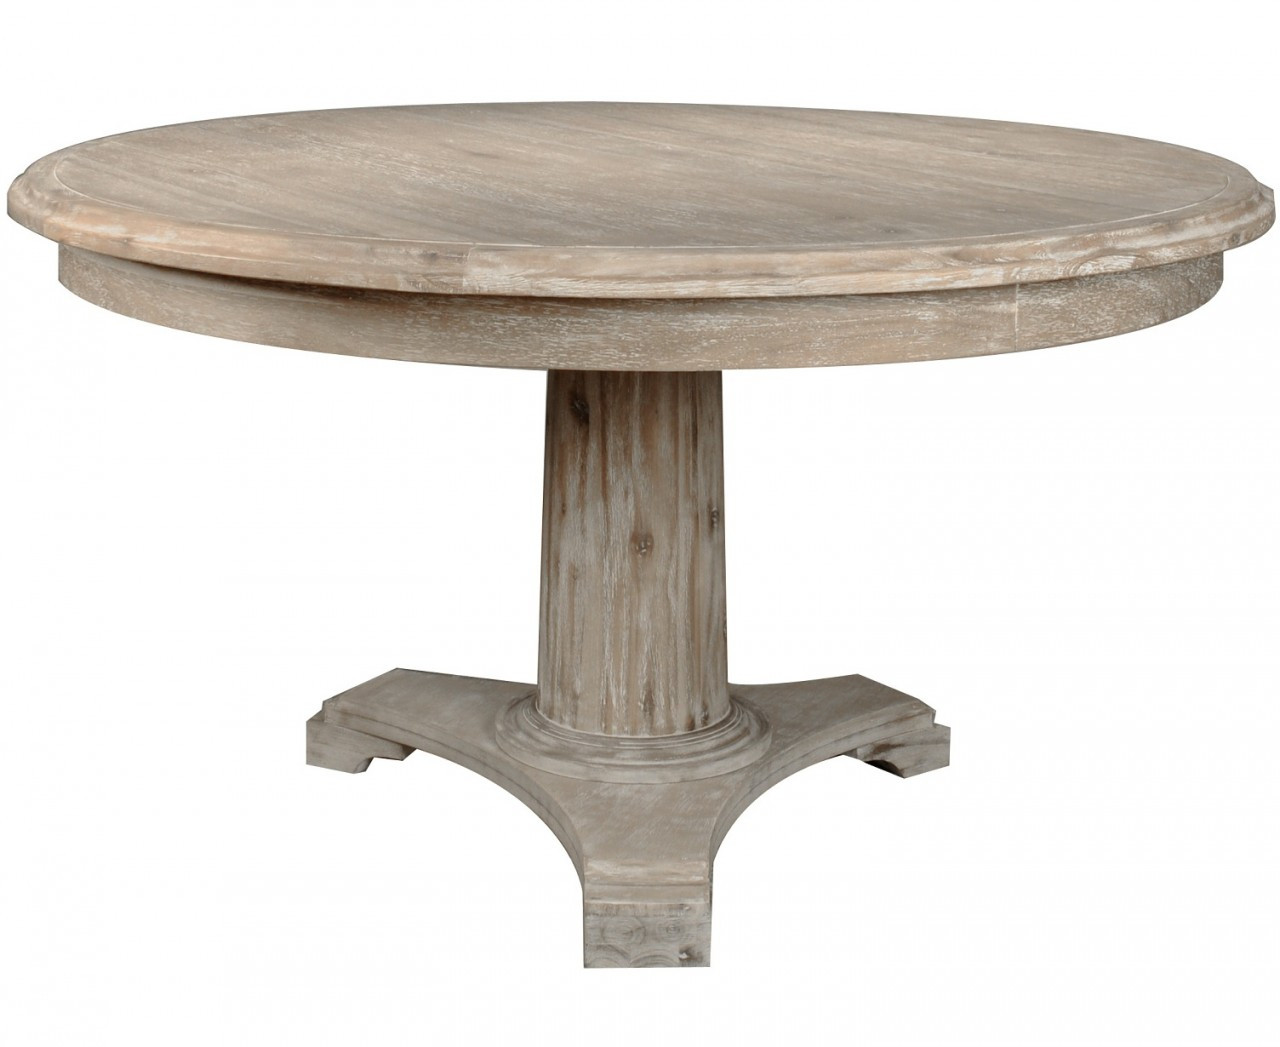 Belmont Round Dining Table 54 Column Pedestal